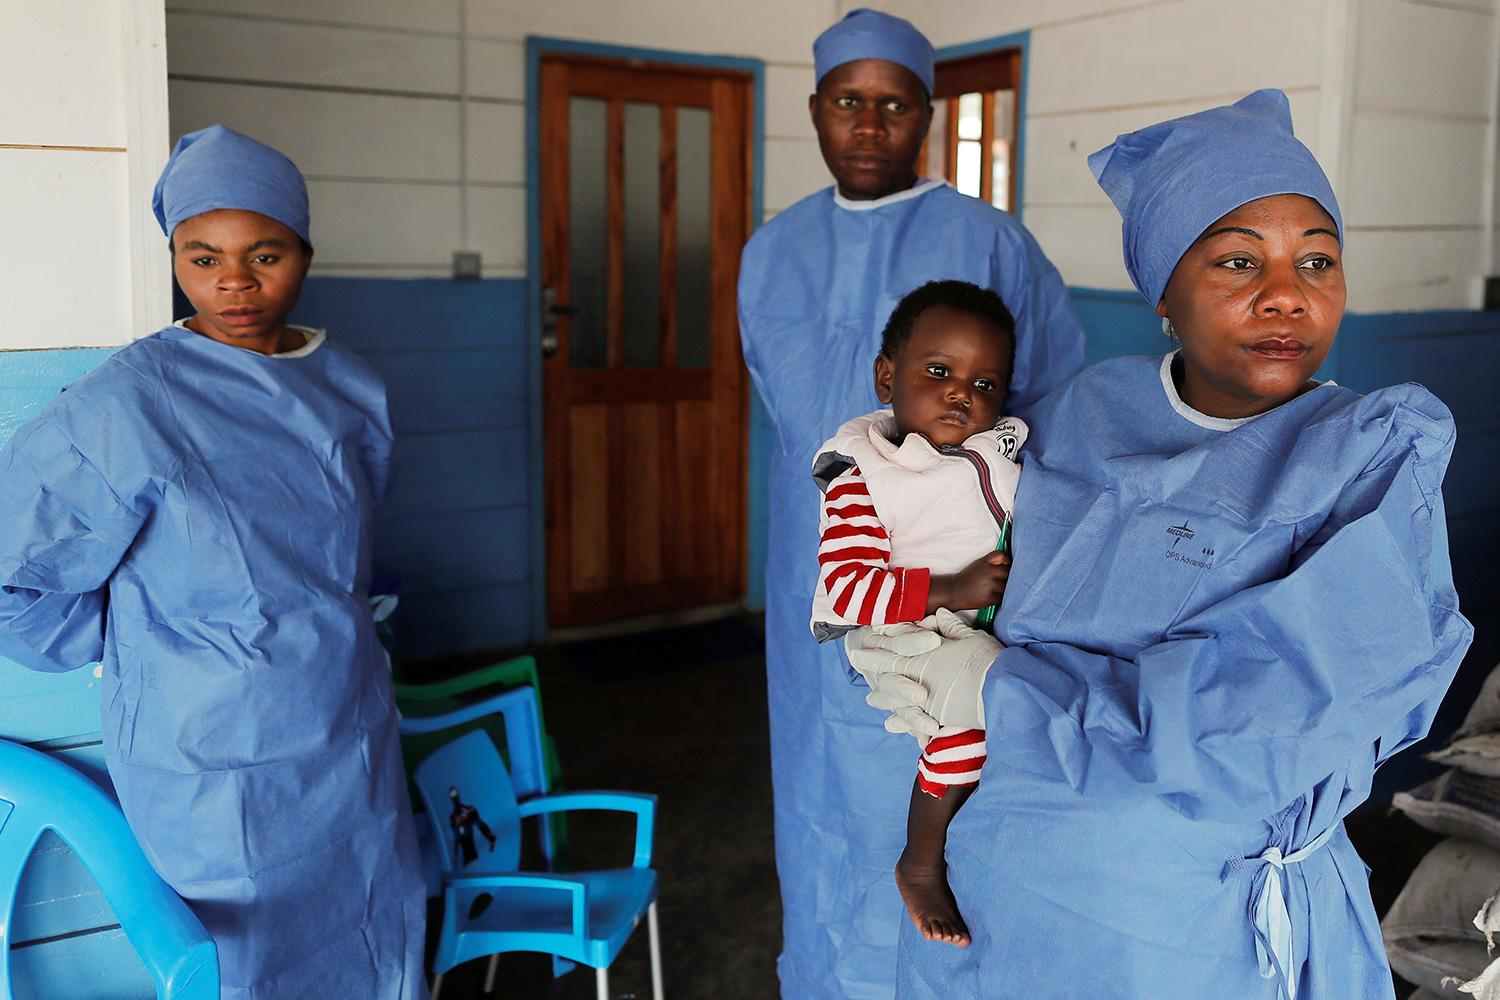 Arlette Kavugho, 40, a mother of six who survived an Ebola infection stands in Katwa, Democratic Republic of Congo, on October 2, 2019 holding 16 months old Kambale Eloge, whose mother died of Ebola. Photo shows Arlette holding the baby in front of a clinic while two other health workers stand in the background. REUTERS/Zohra Bensemra